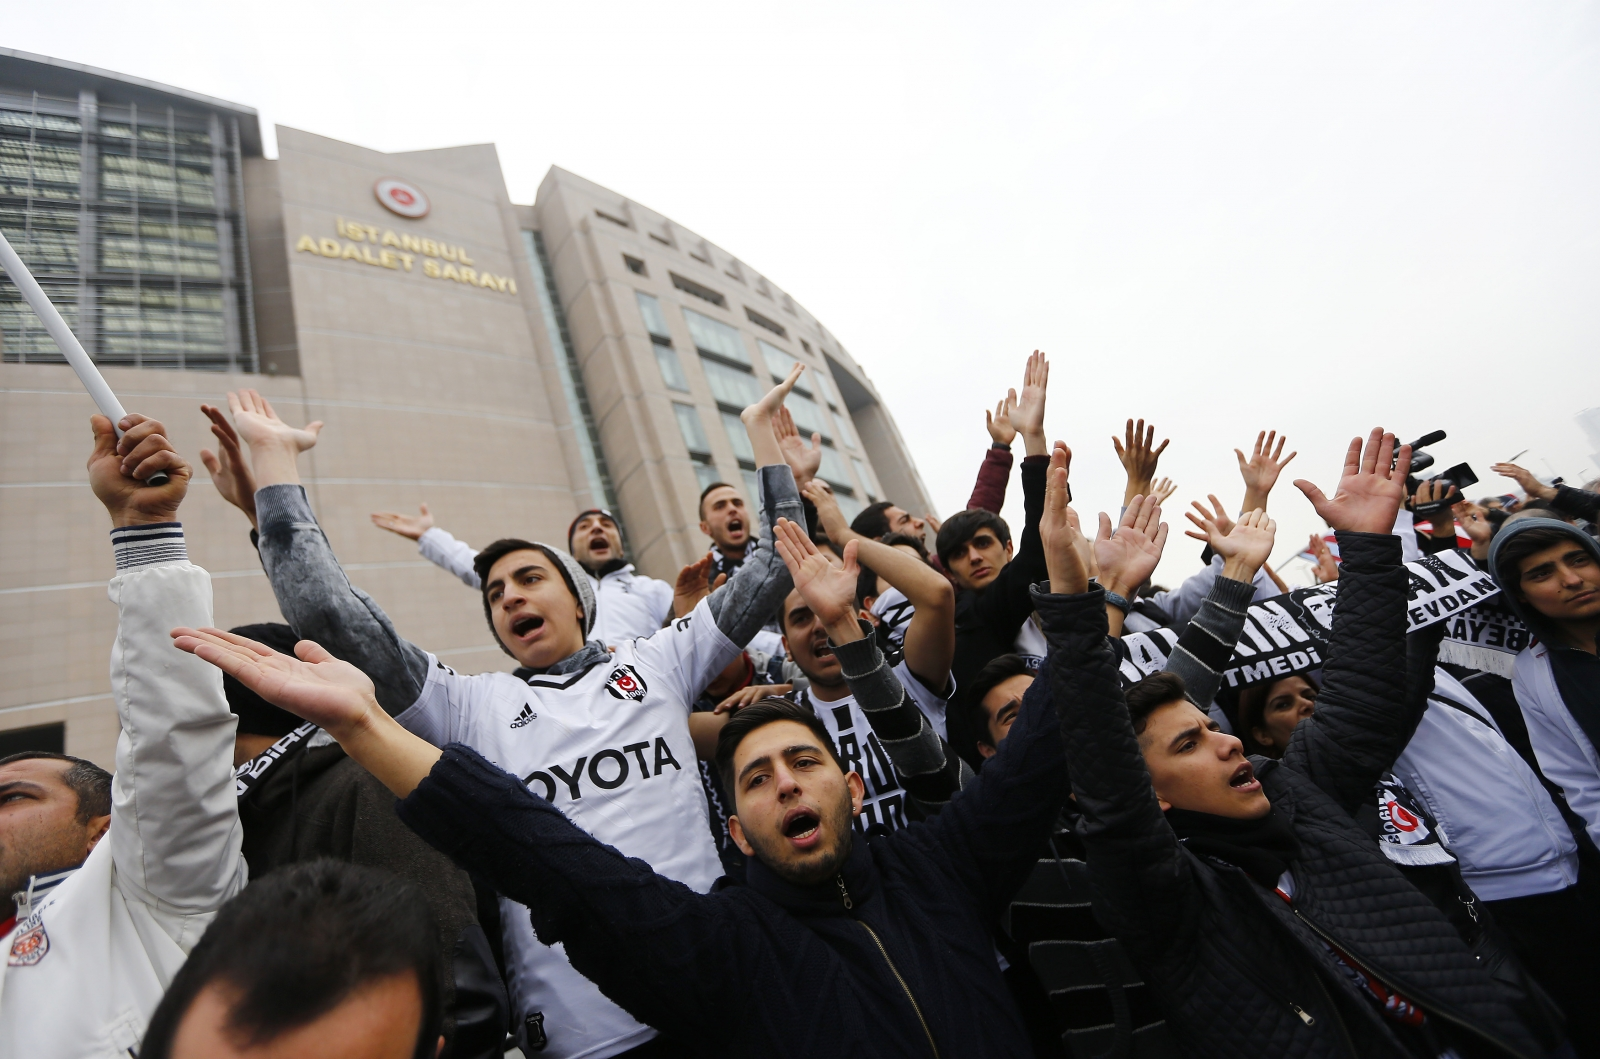 fans protest outside court room